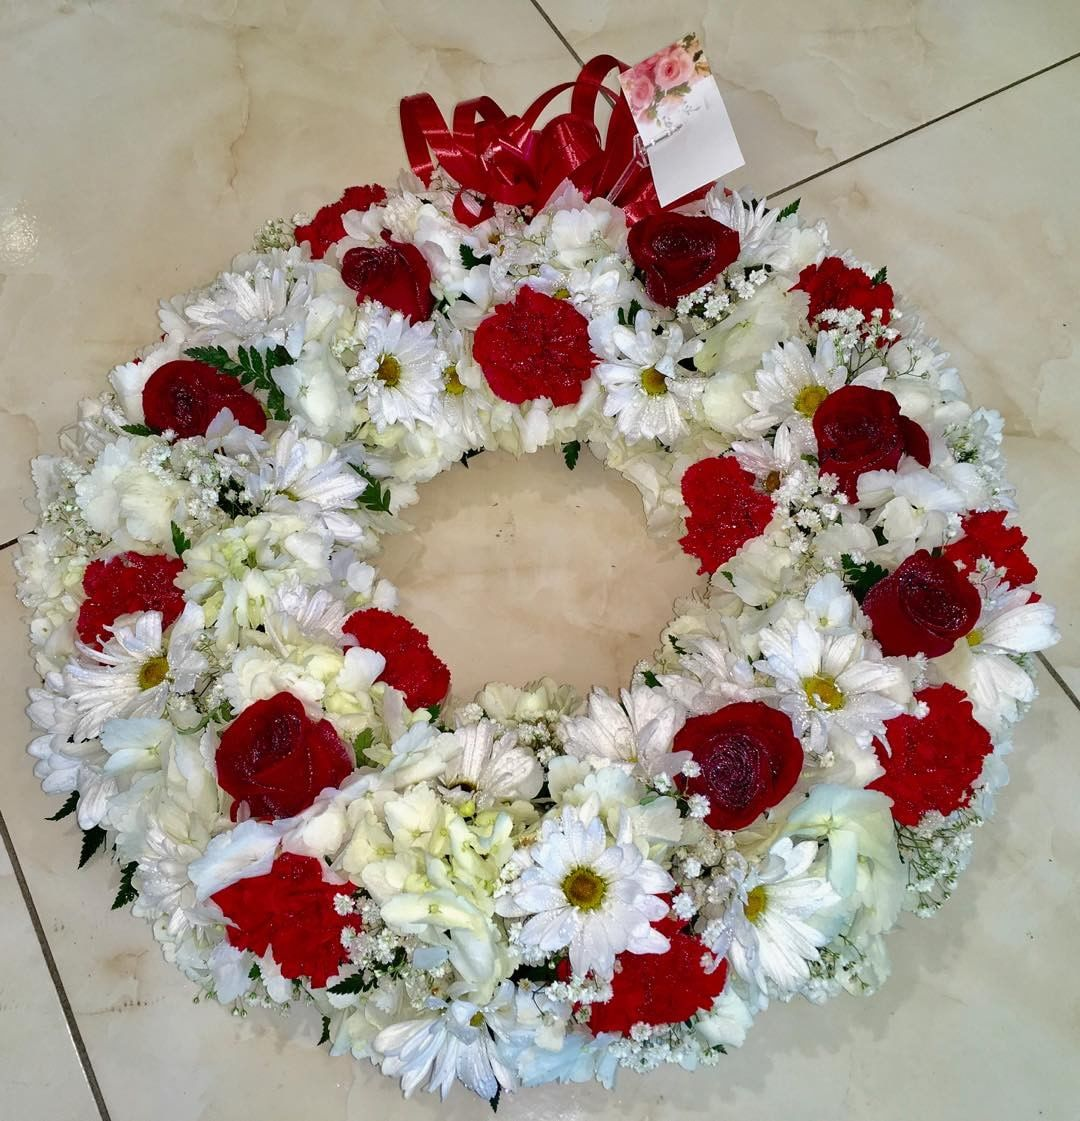 Funeral Wreath antigua